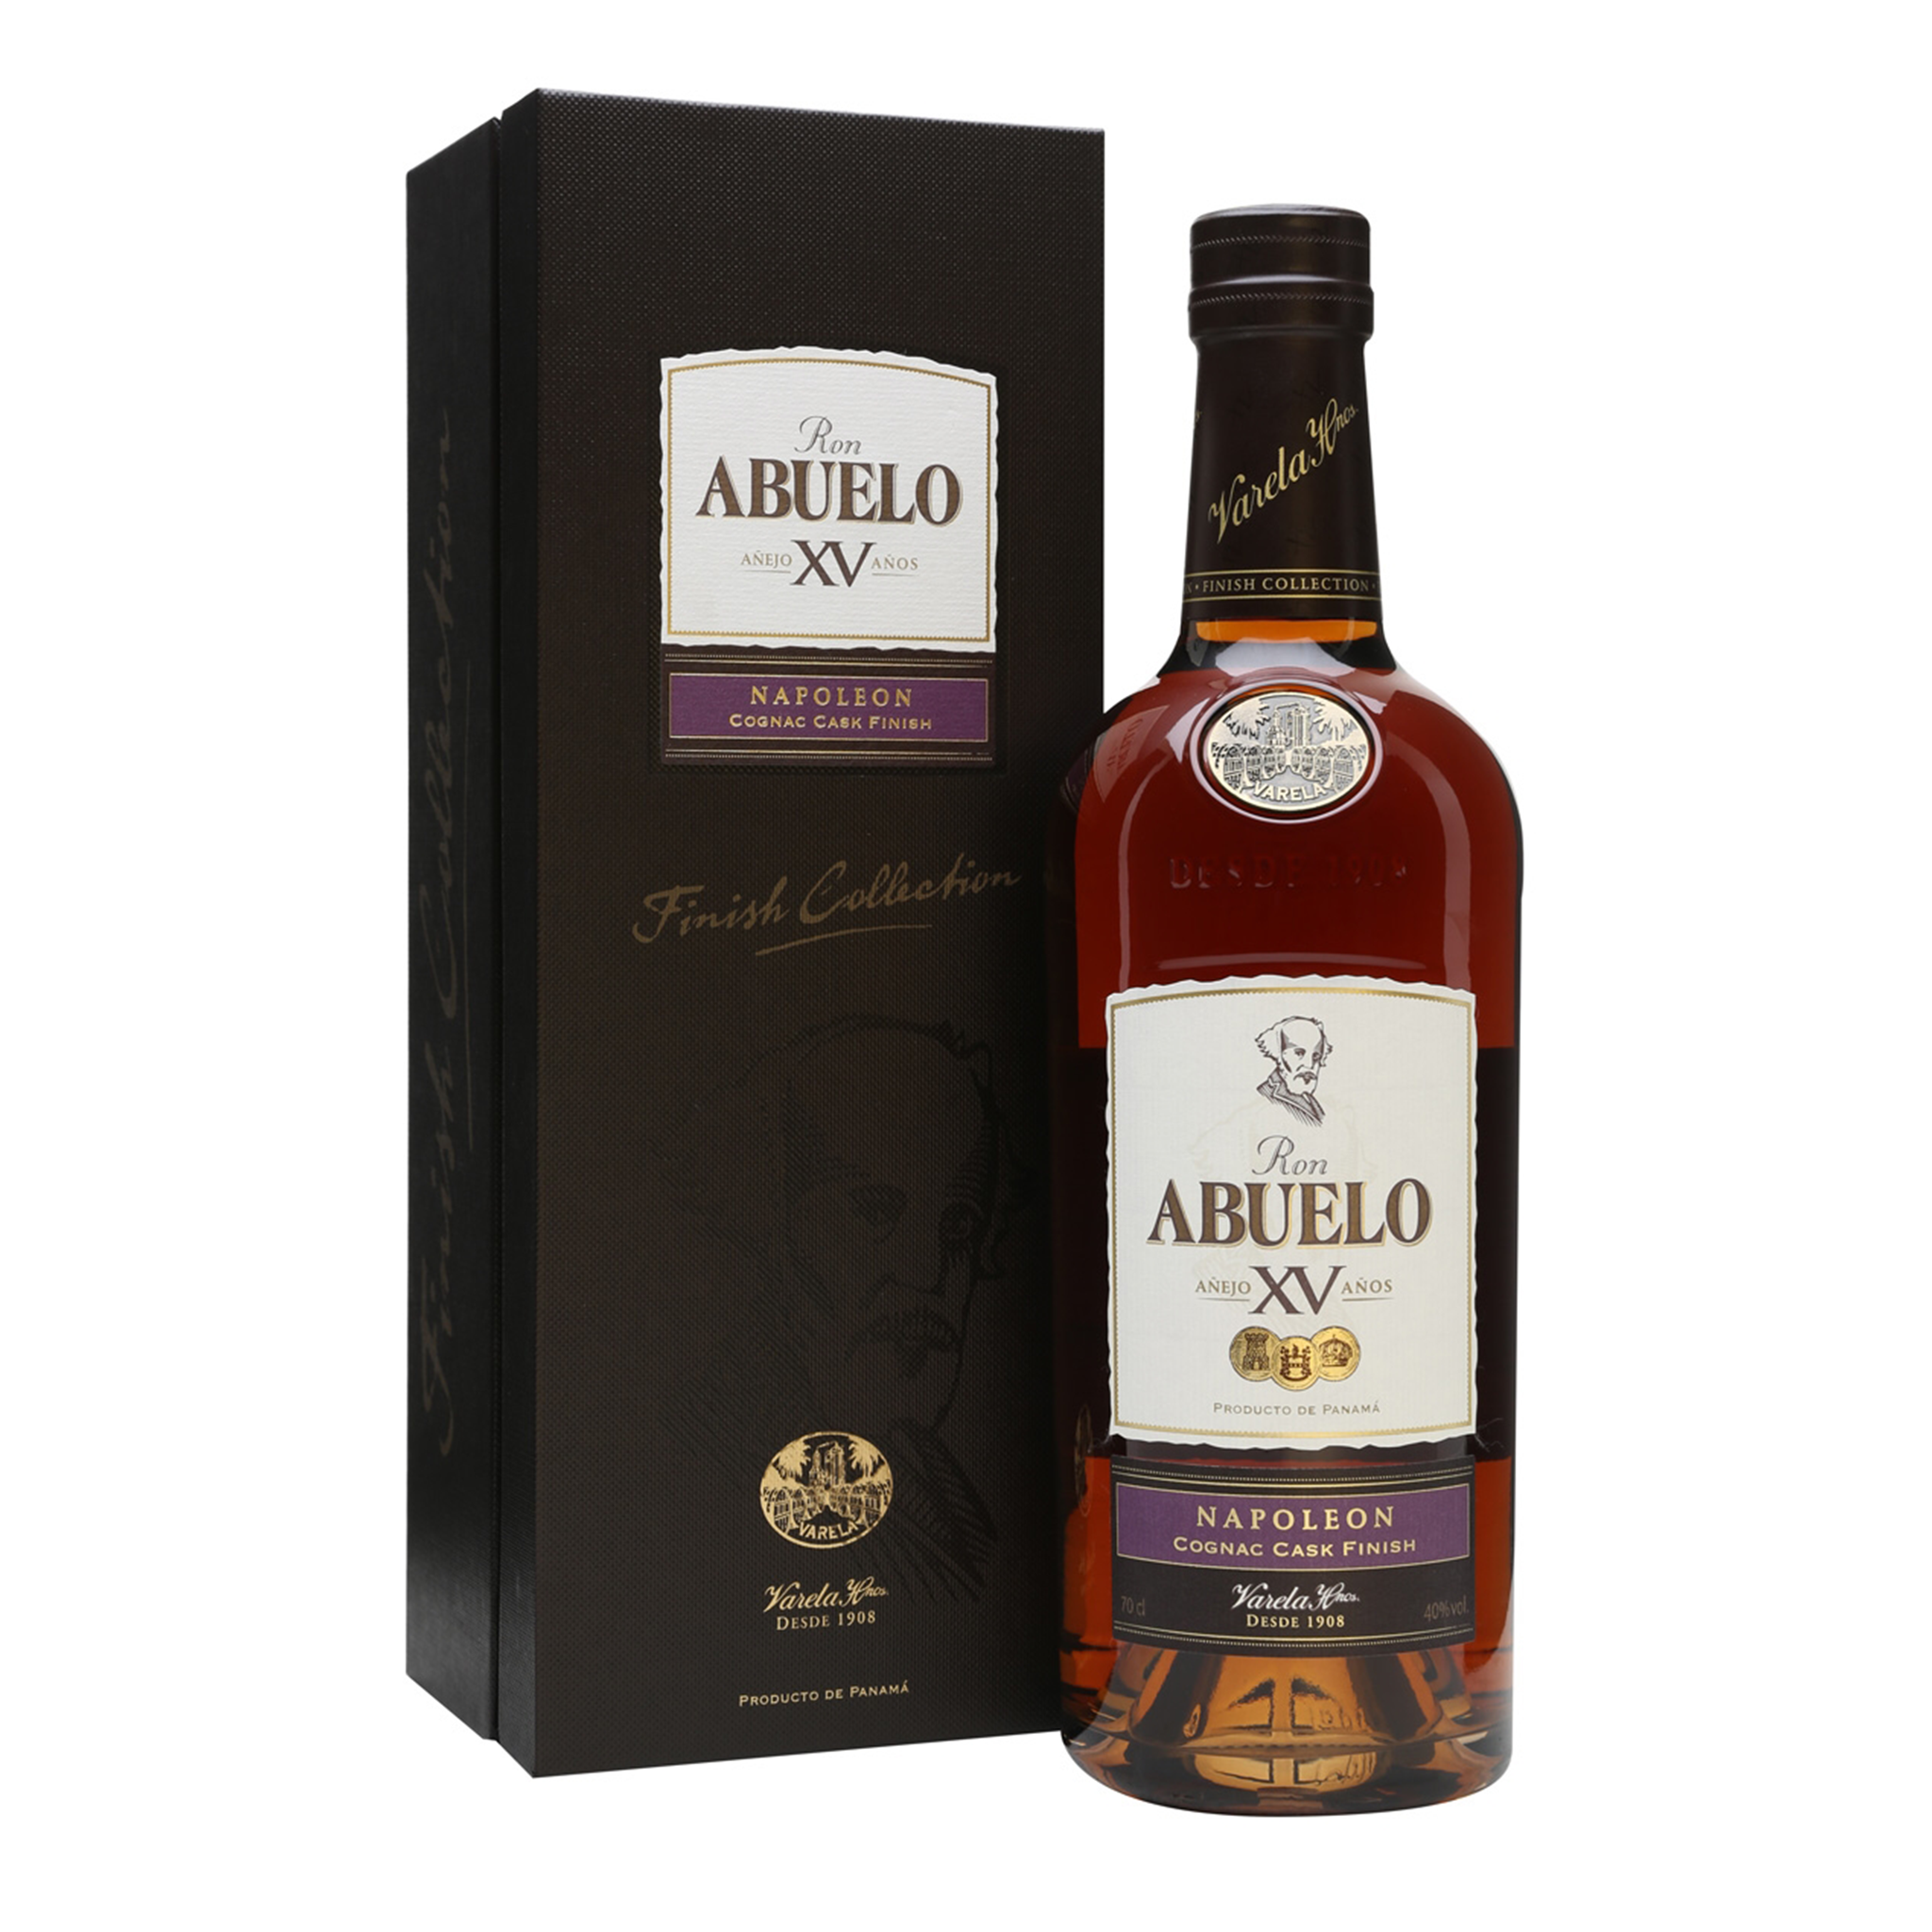 RON ABUELO  XV AÑOS FINISH COLLECTION NAPOLEON x 750ML